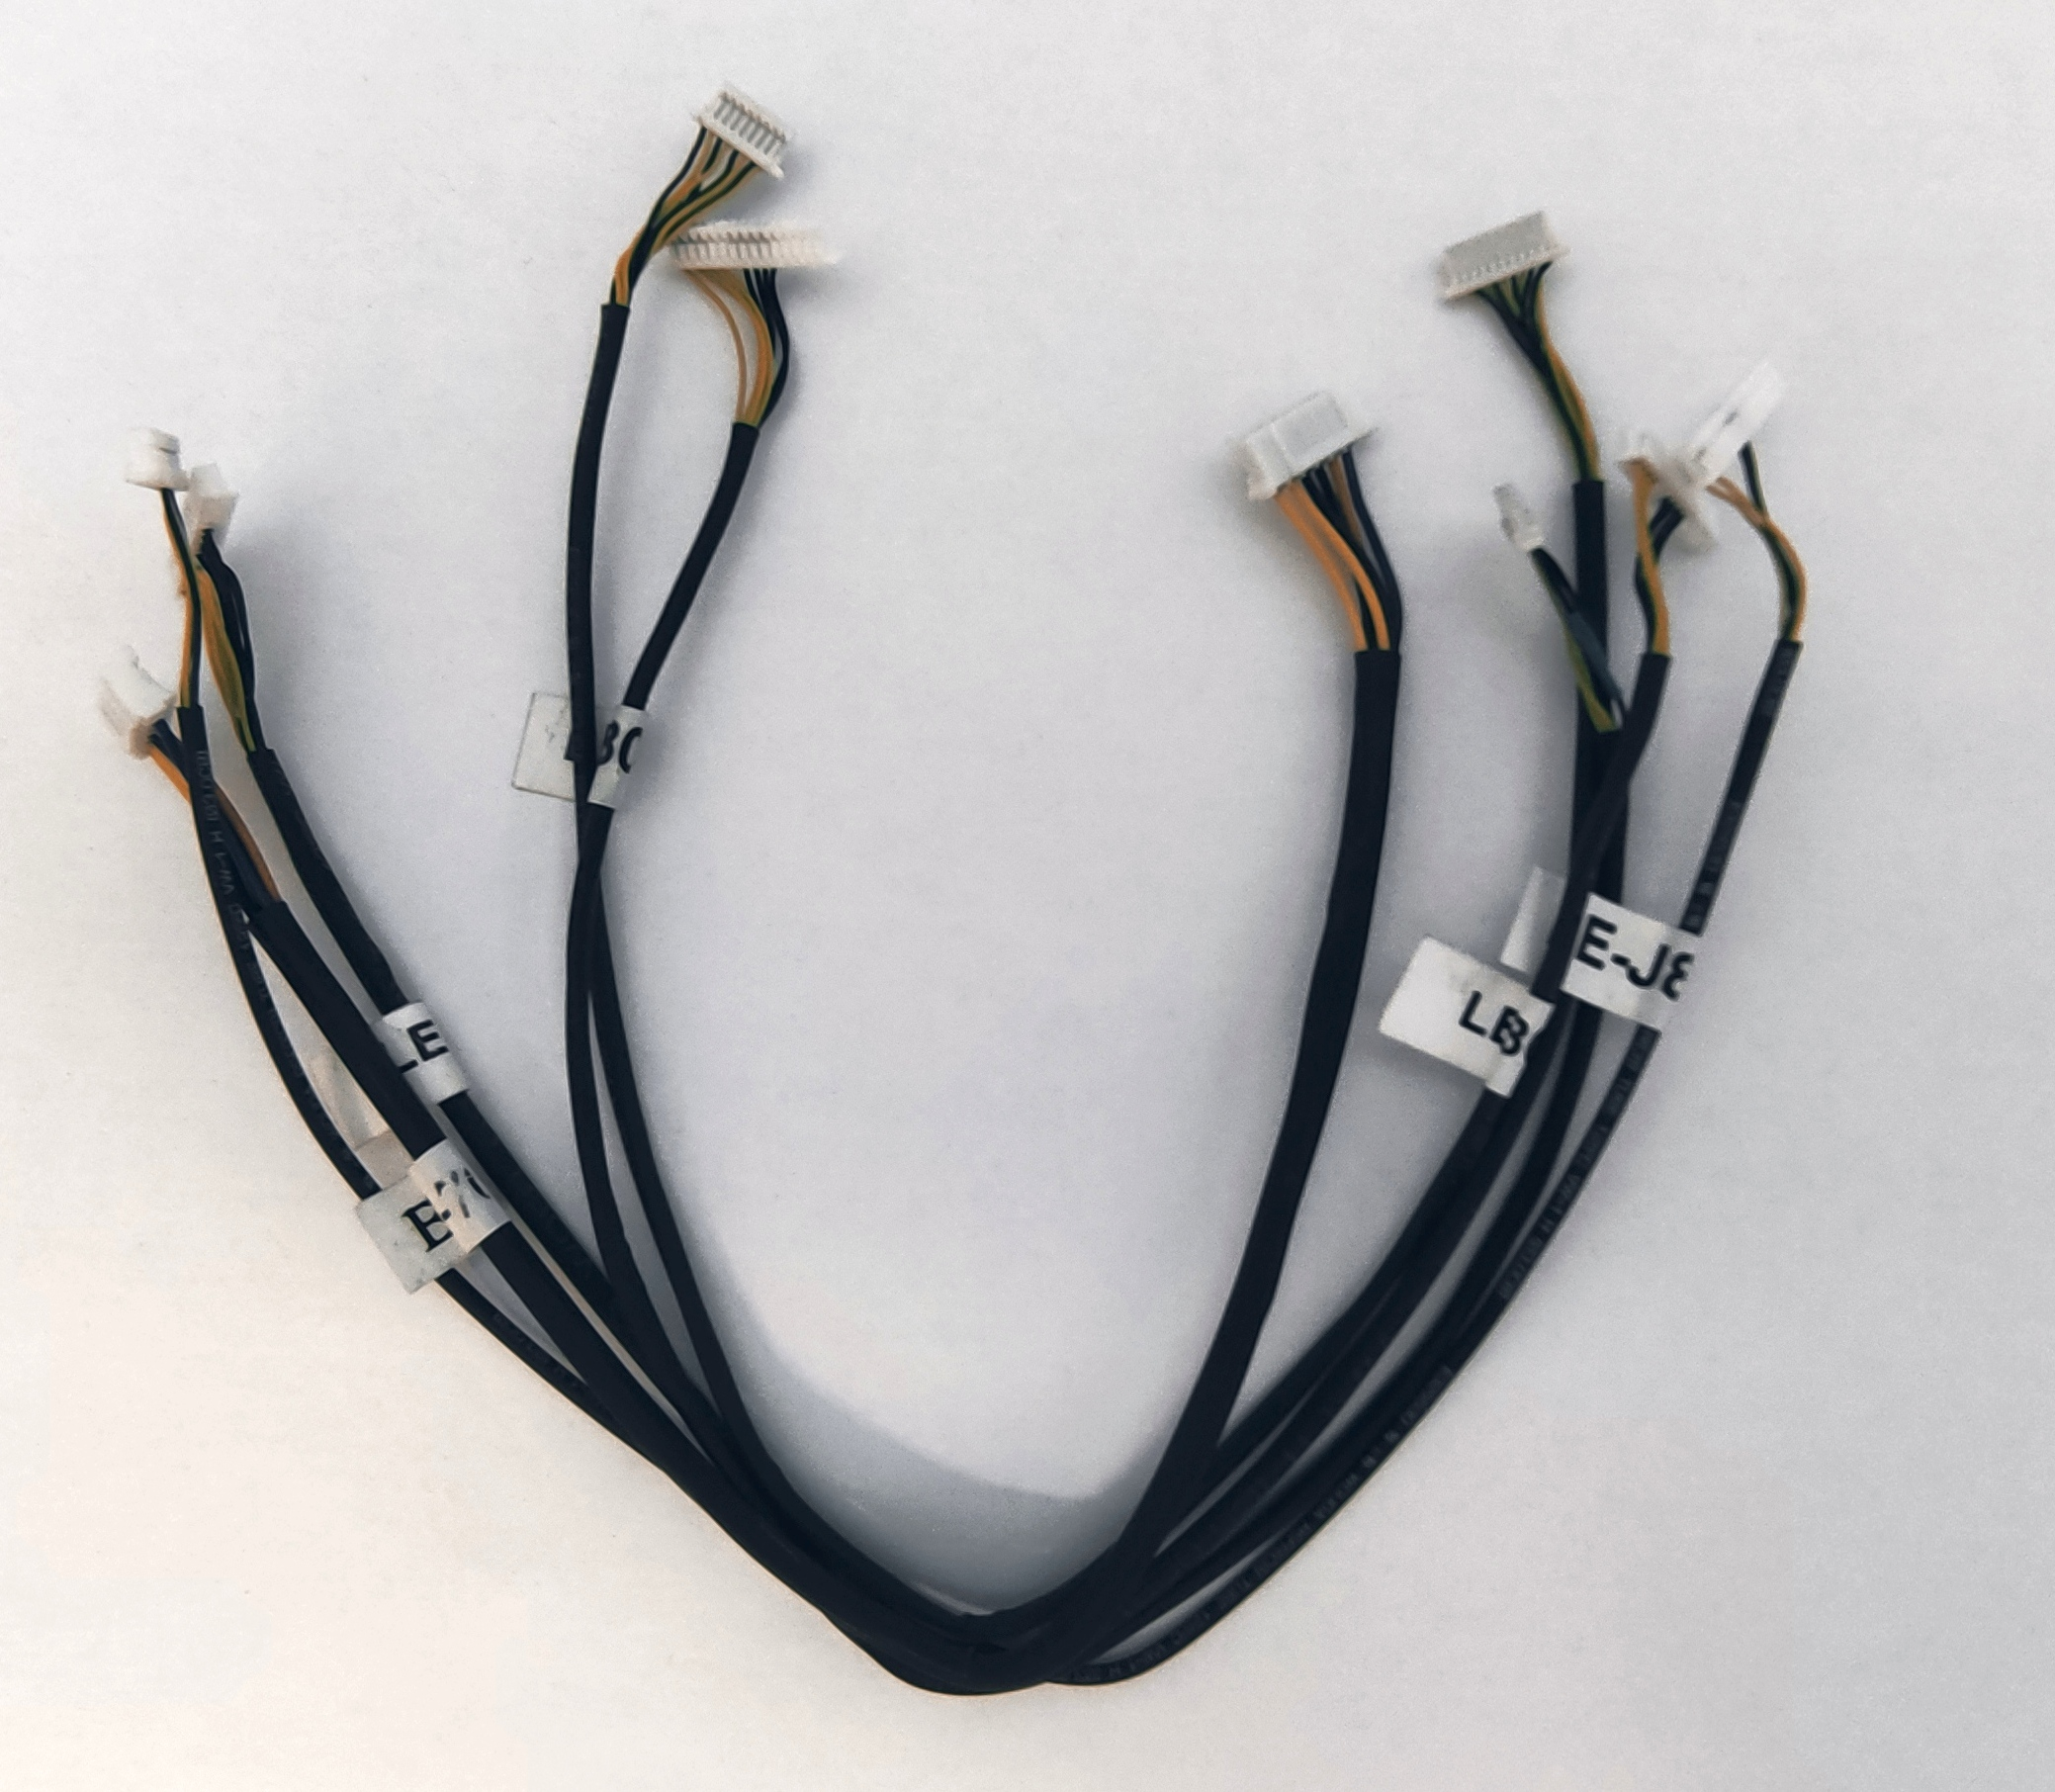 BT-CABLE-70750